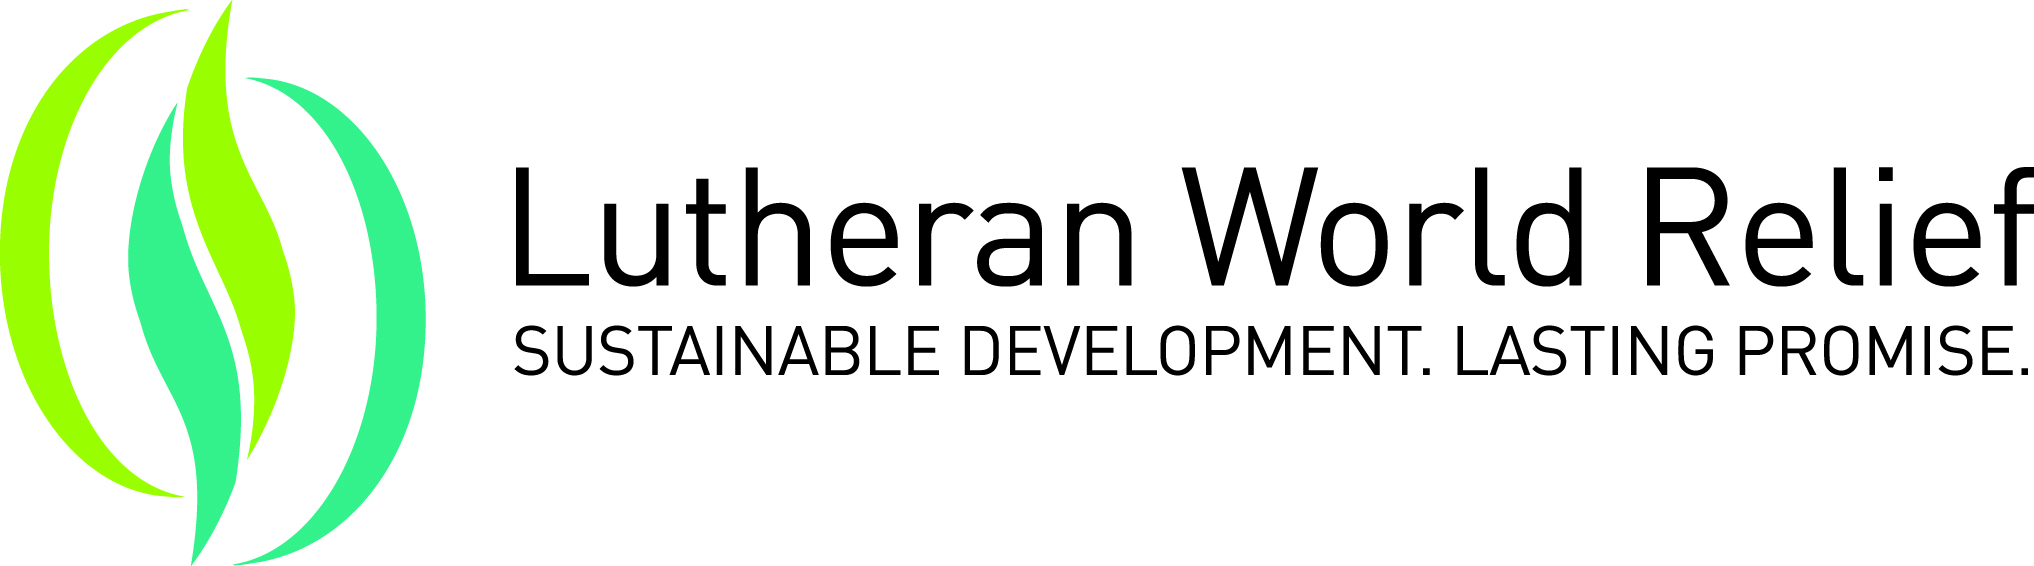 Lutherian World Relief logo